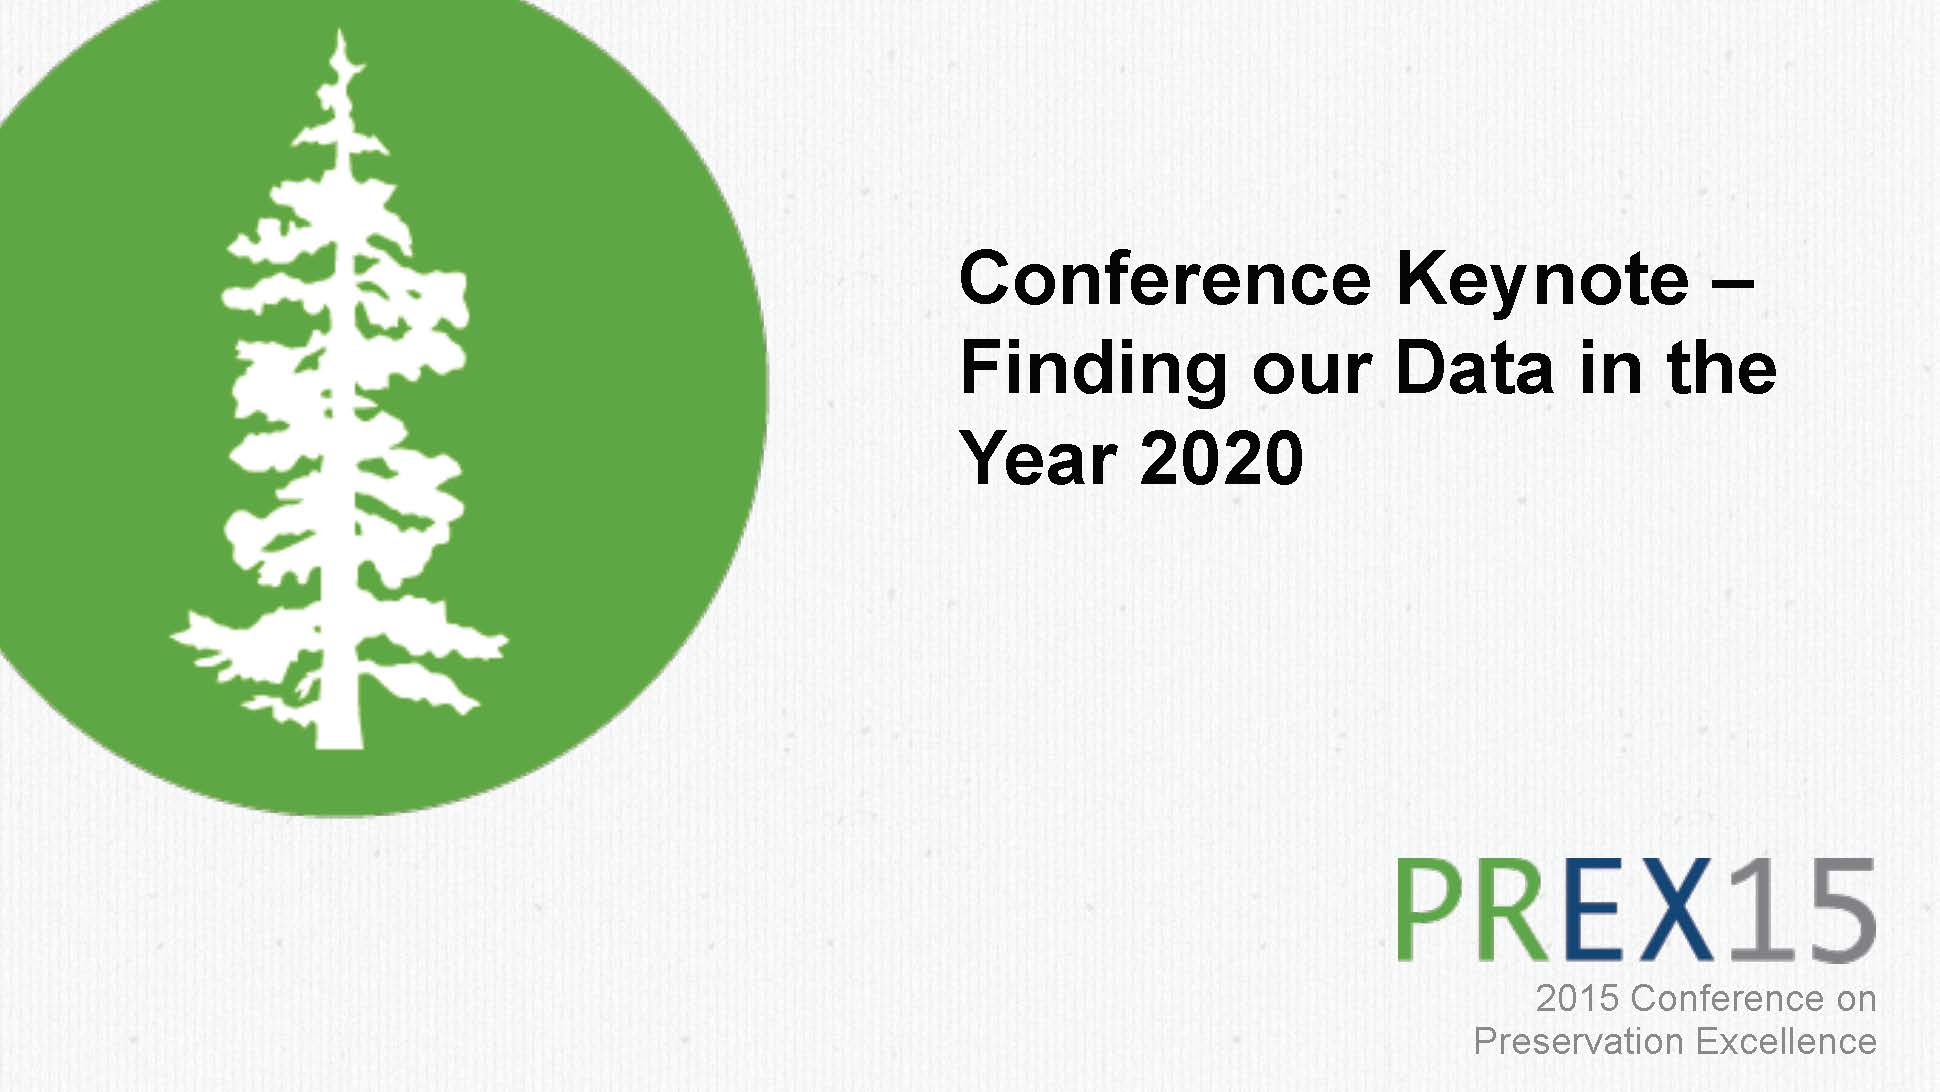 Finding Our Data in the Year 2020 – Conference Keynote